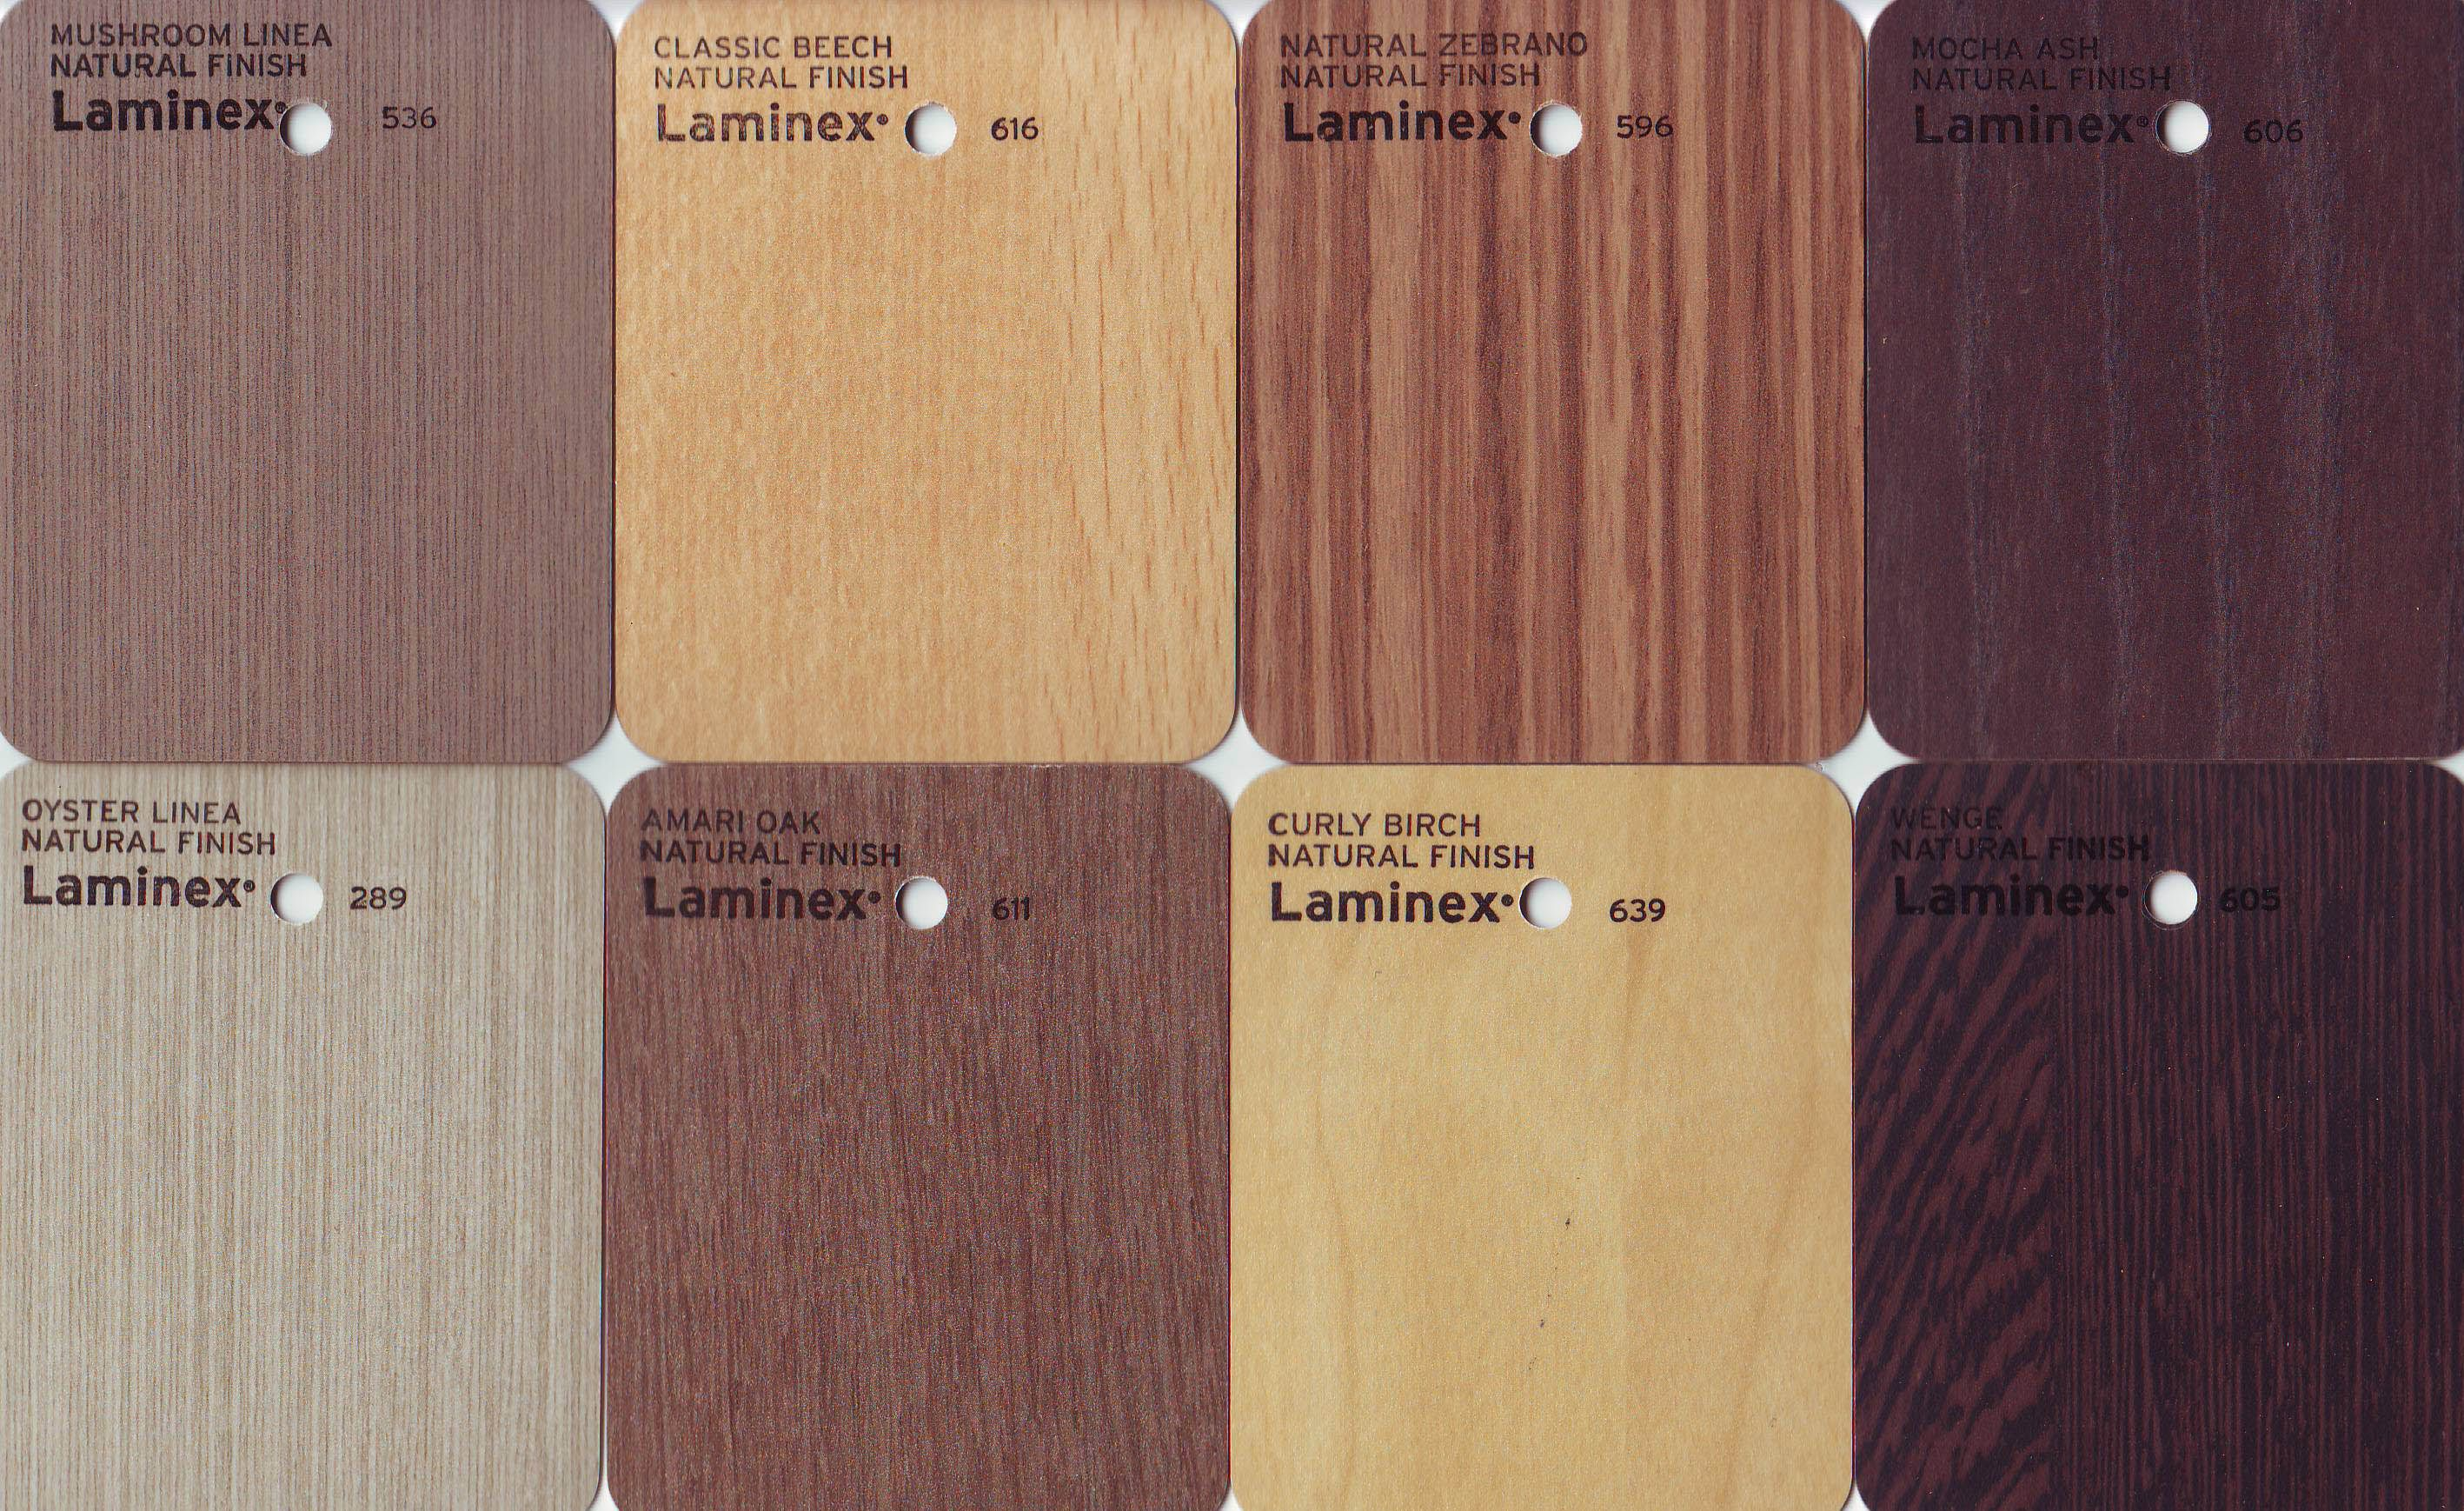 Pin Boards Bunnings Laminex Samples I Loved Collecting These On Trips To Bunnings